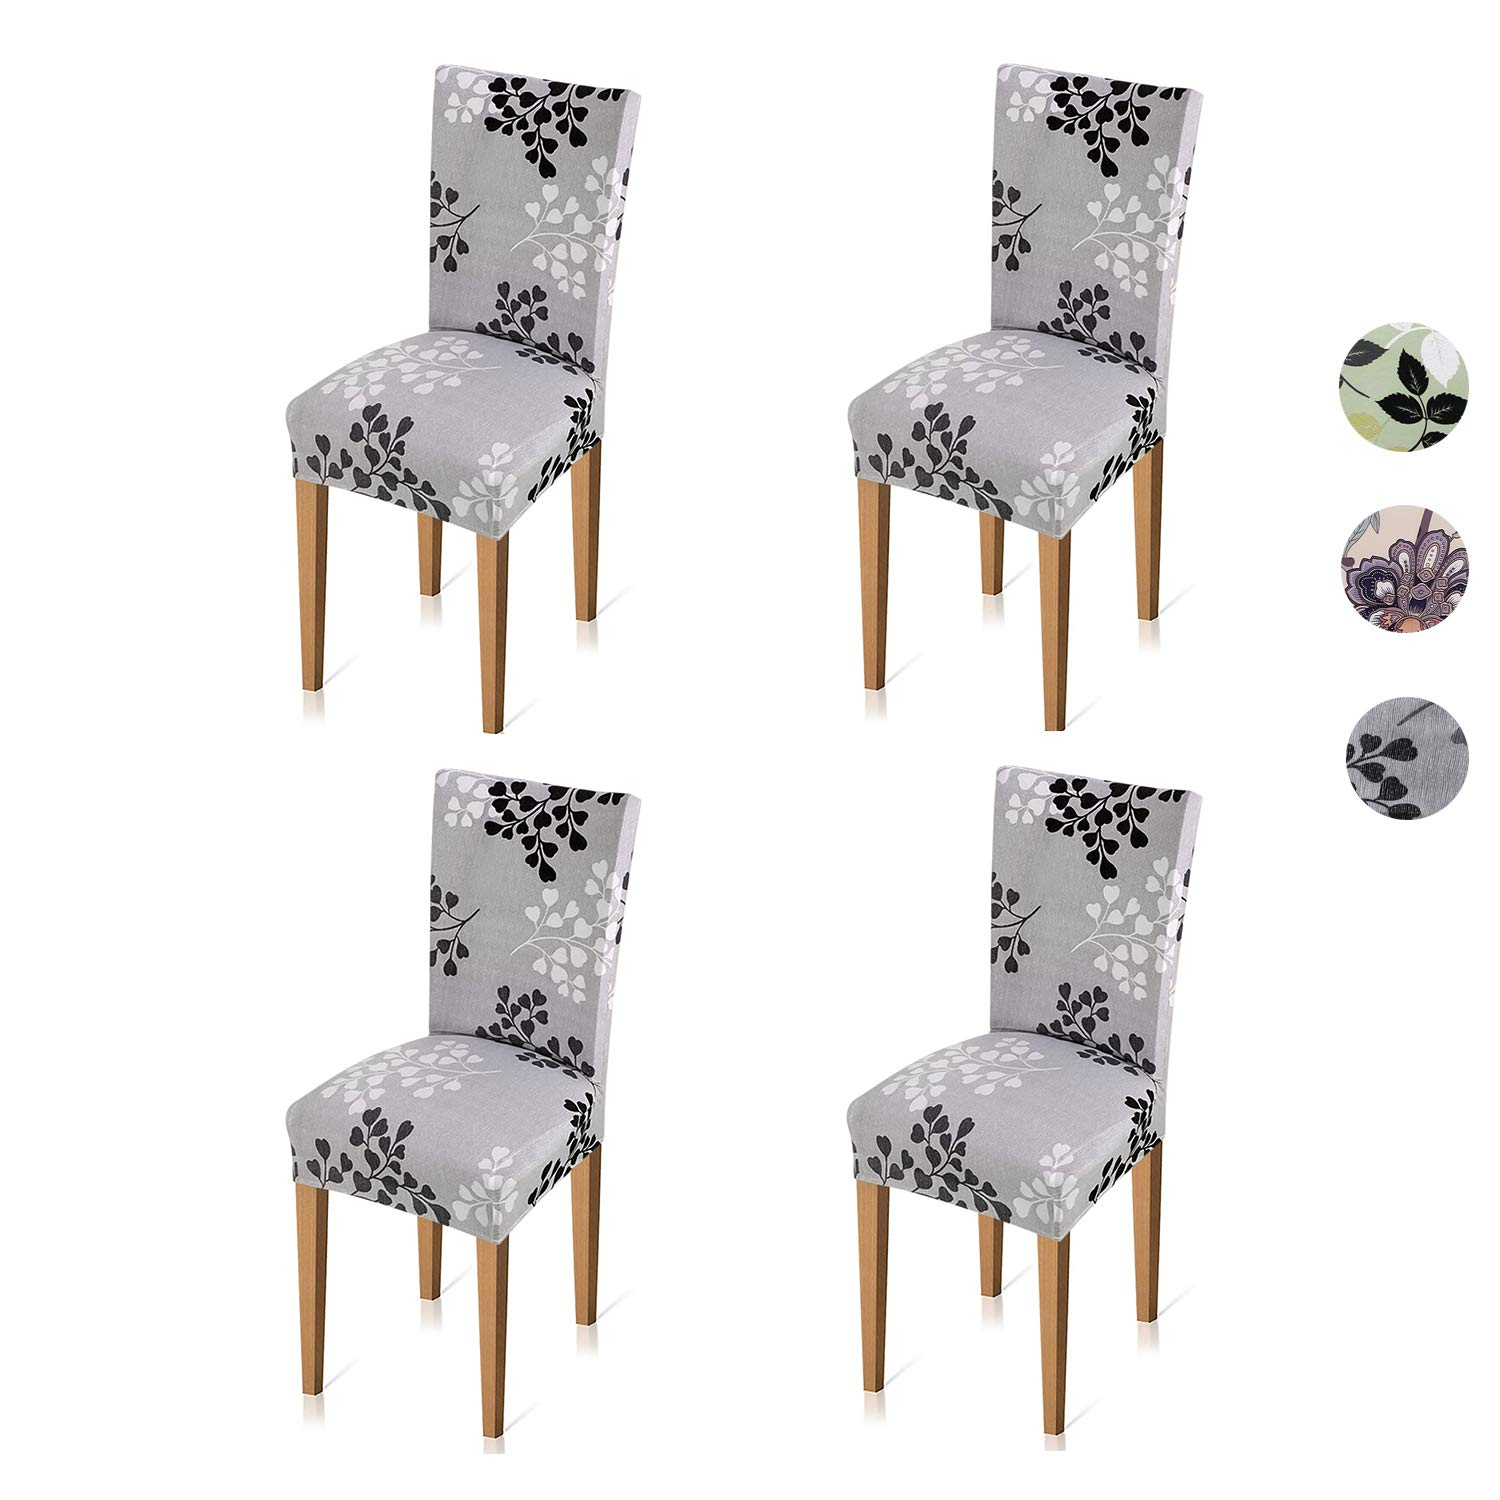 Xflyee Stretch Dining Room Chair Covers Jacquard Removable Washable Kitchen Parson Chair Slipcovers Set of 4 (A, 4 Pack)